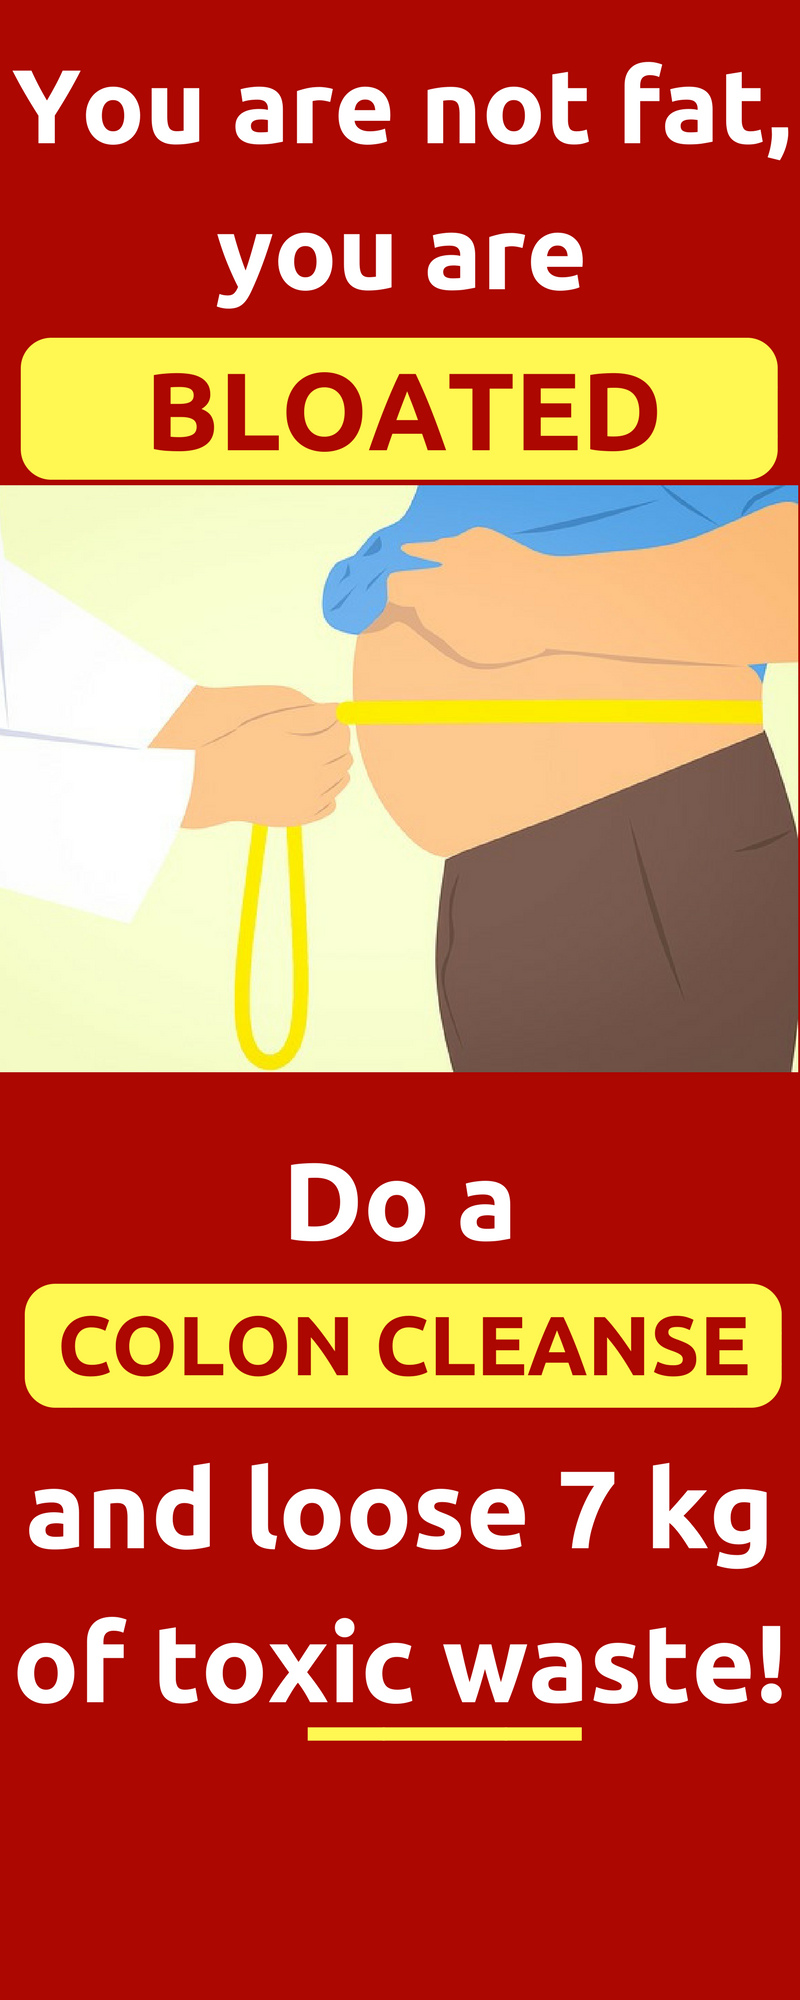 Homemade Cleanse That Will Clean Your Colon Of Toxic Waste. Colon cleansing before and after, colon cleansing detox, colon cleansing recipe, colon cleansing ...